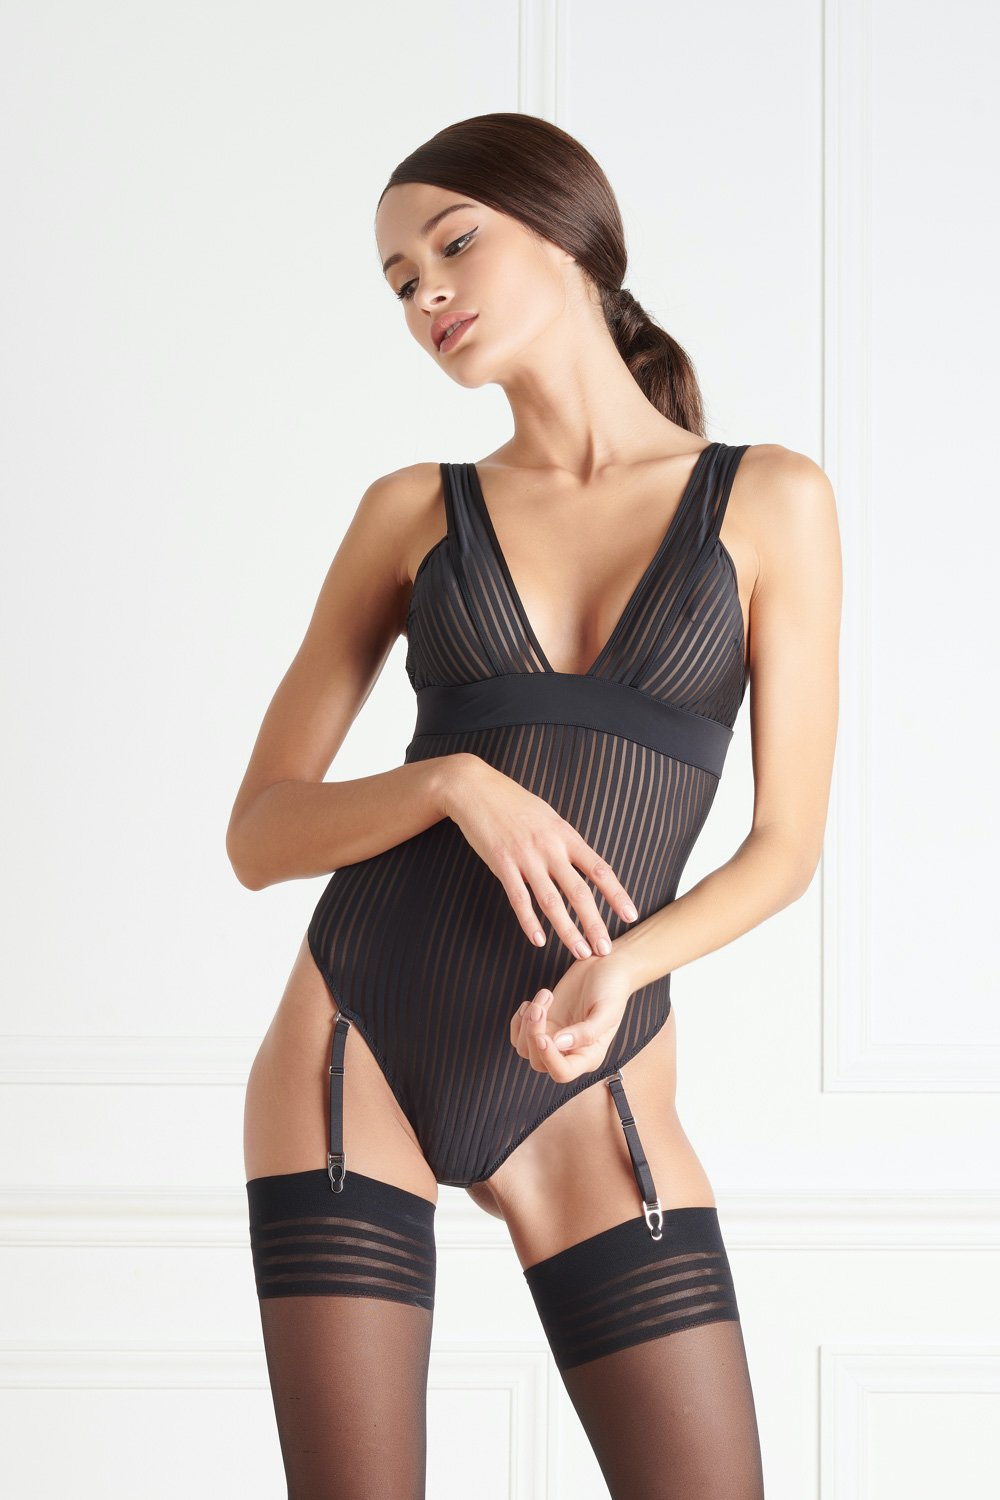 Maison Close Bande à Part V Neck Thong Body - The Hosiery Box